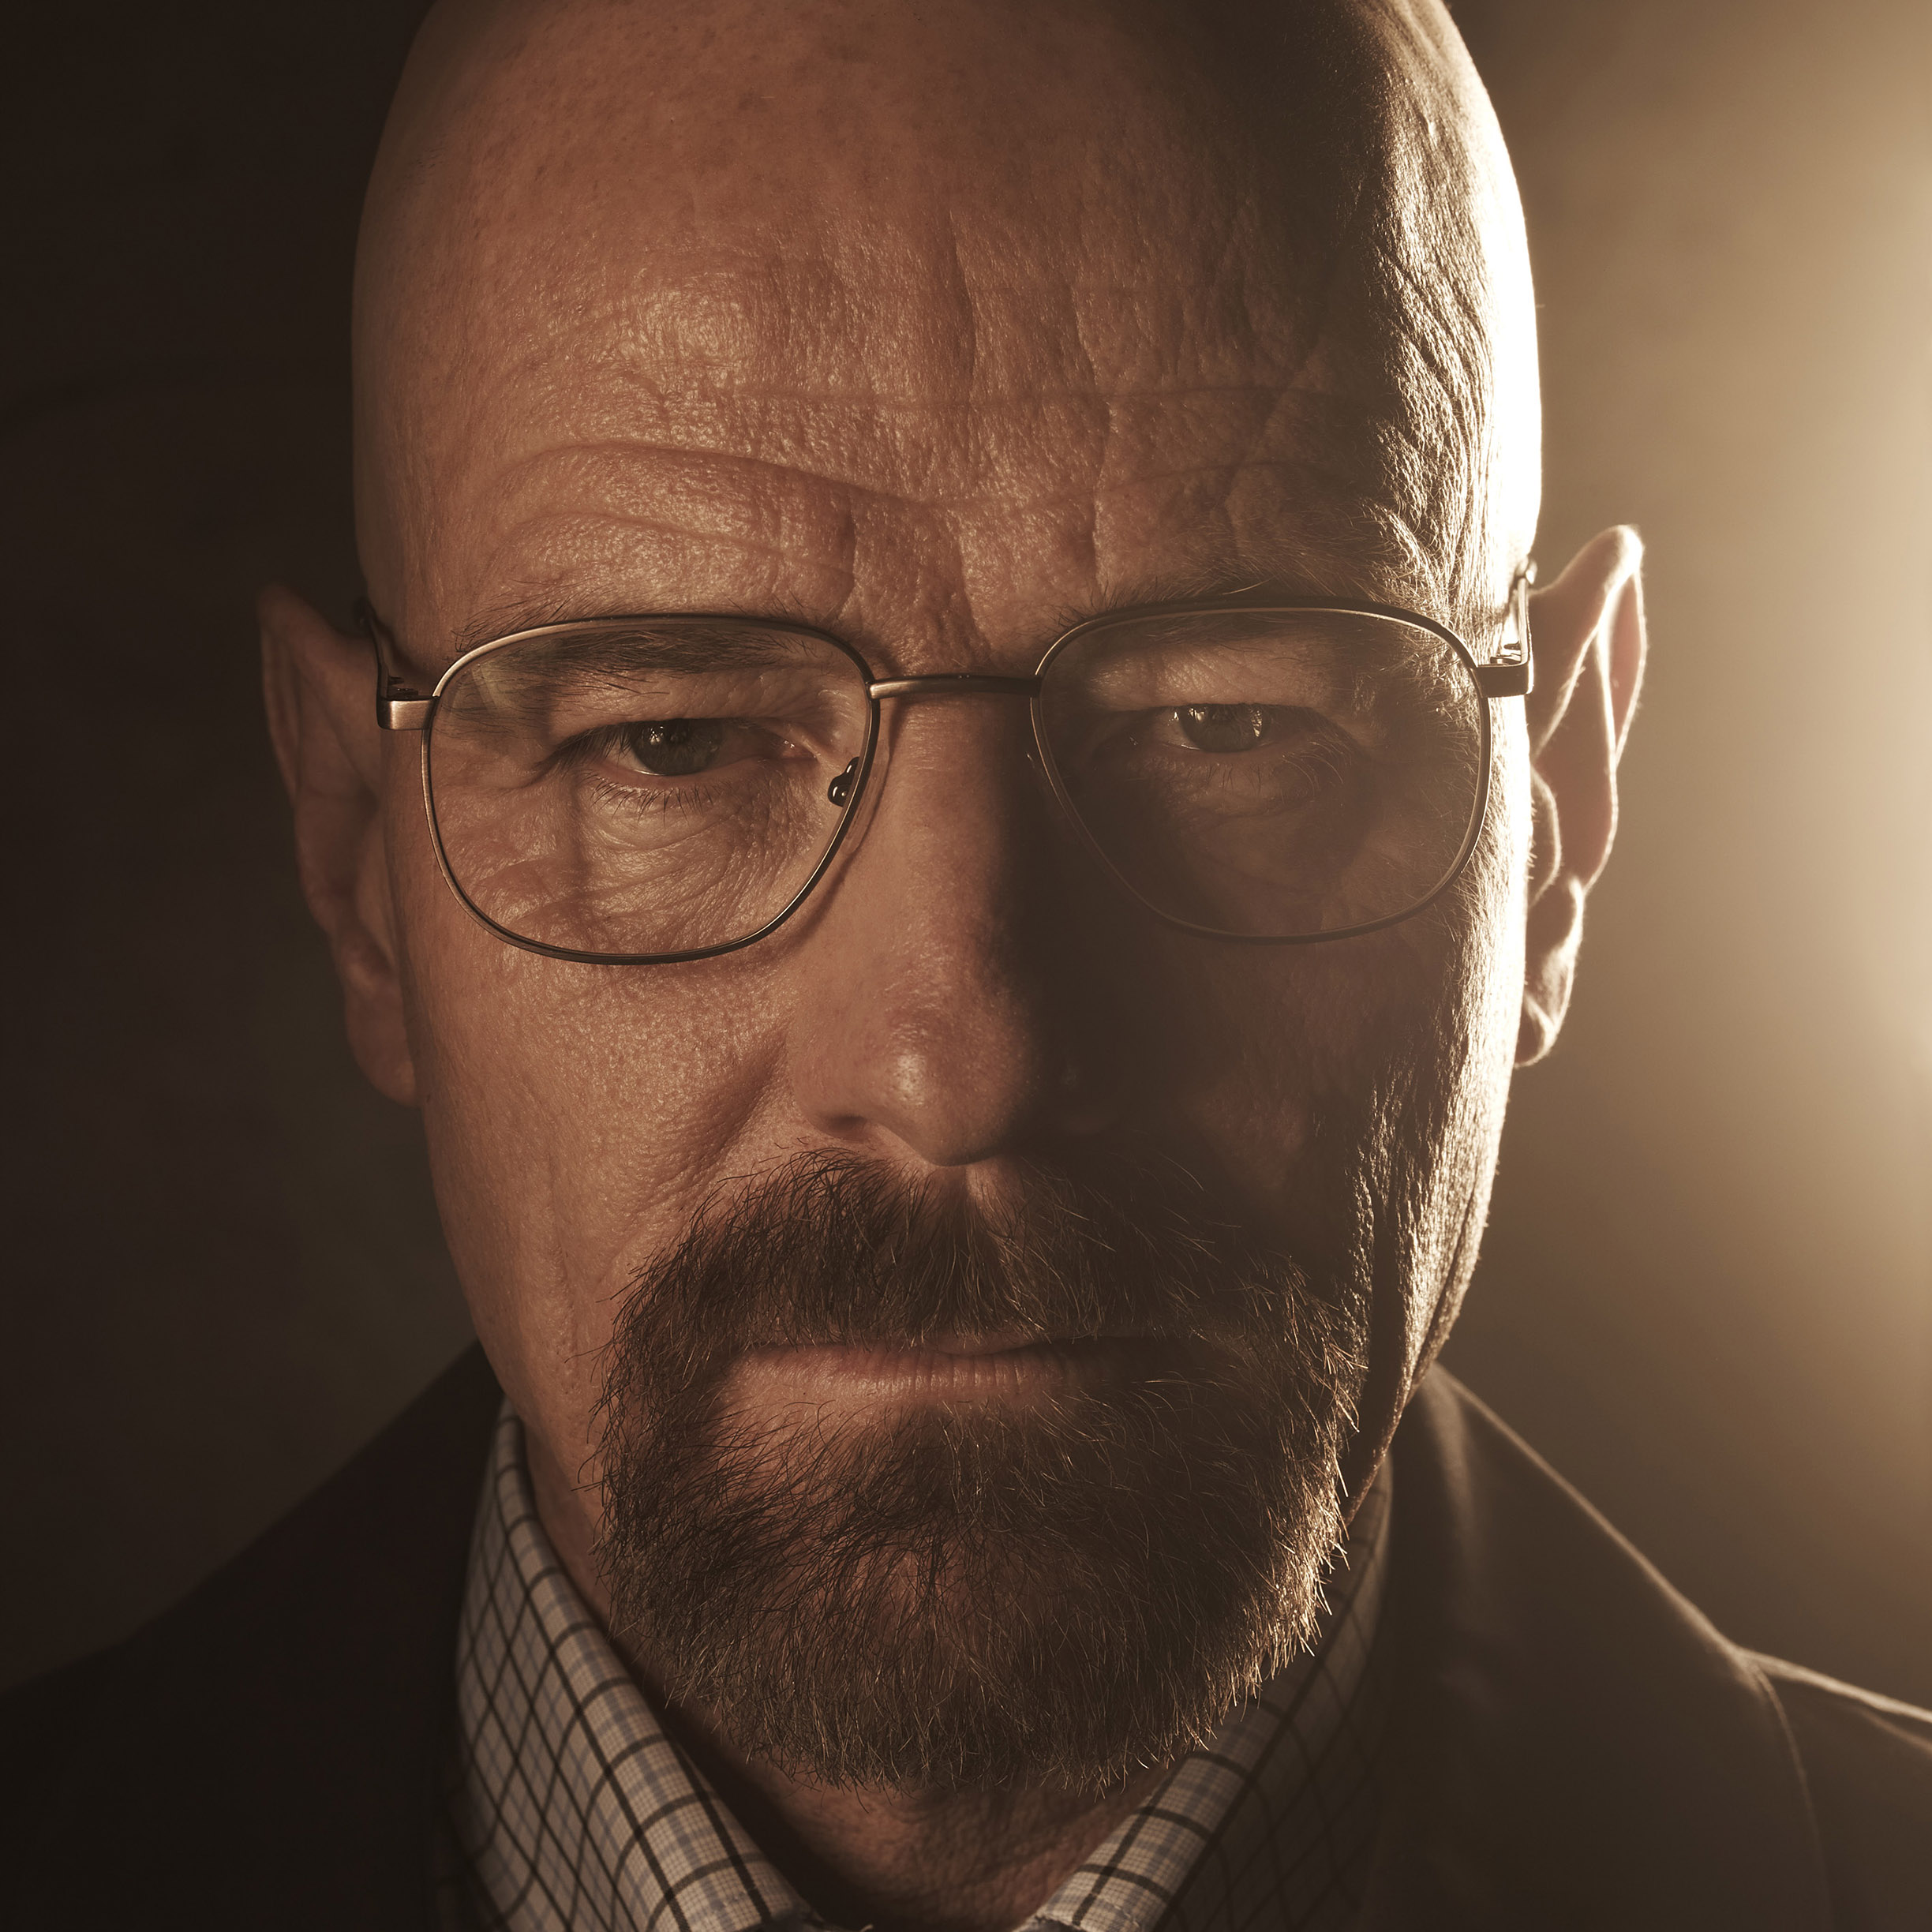 Beard Hd Wallpapers Download Breaking Bad Wallpapers For Iphone And Ipad